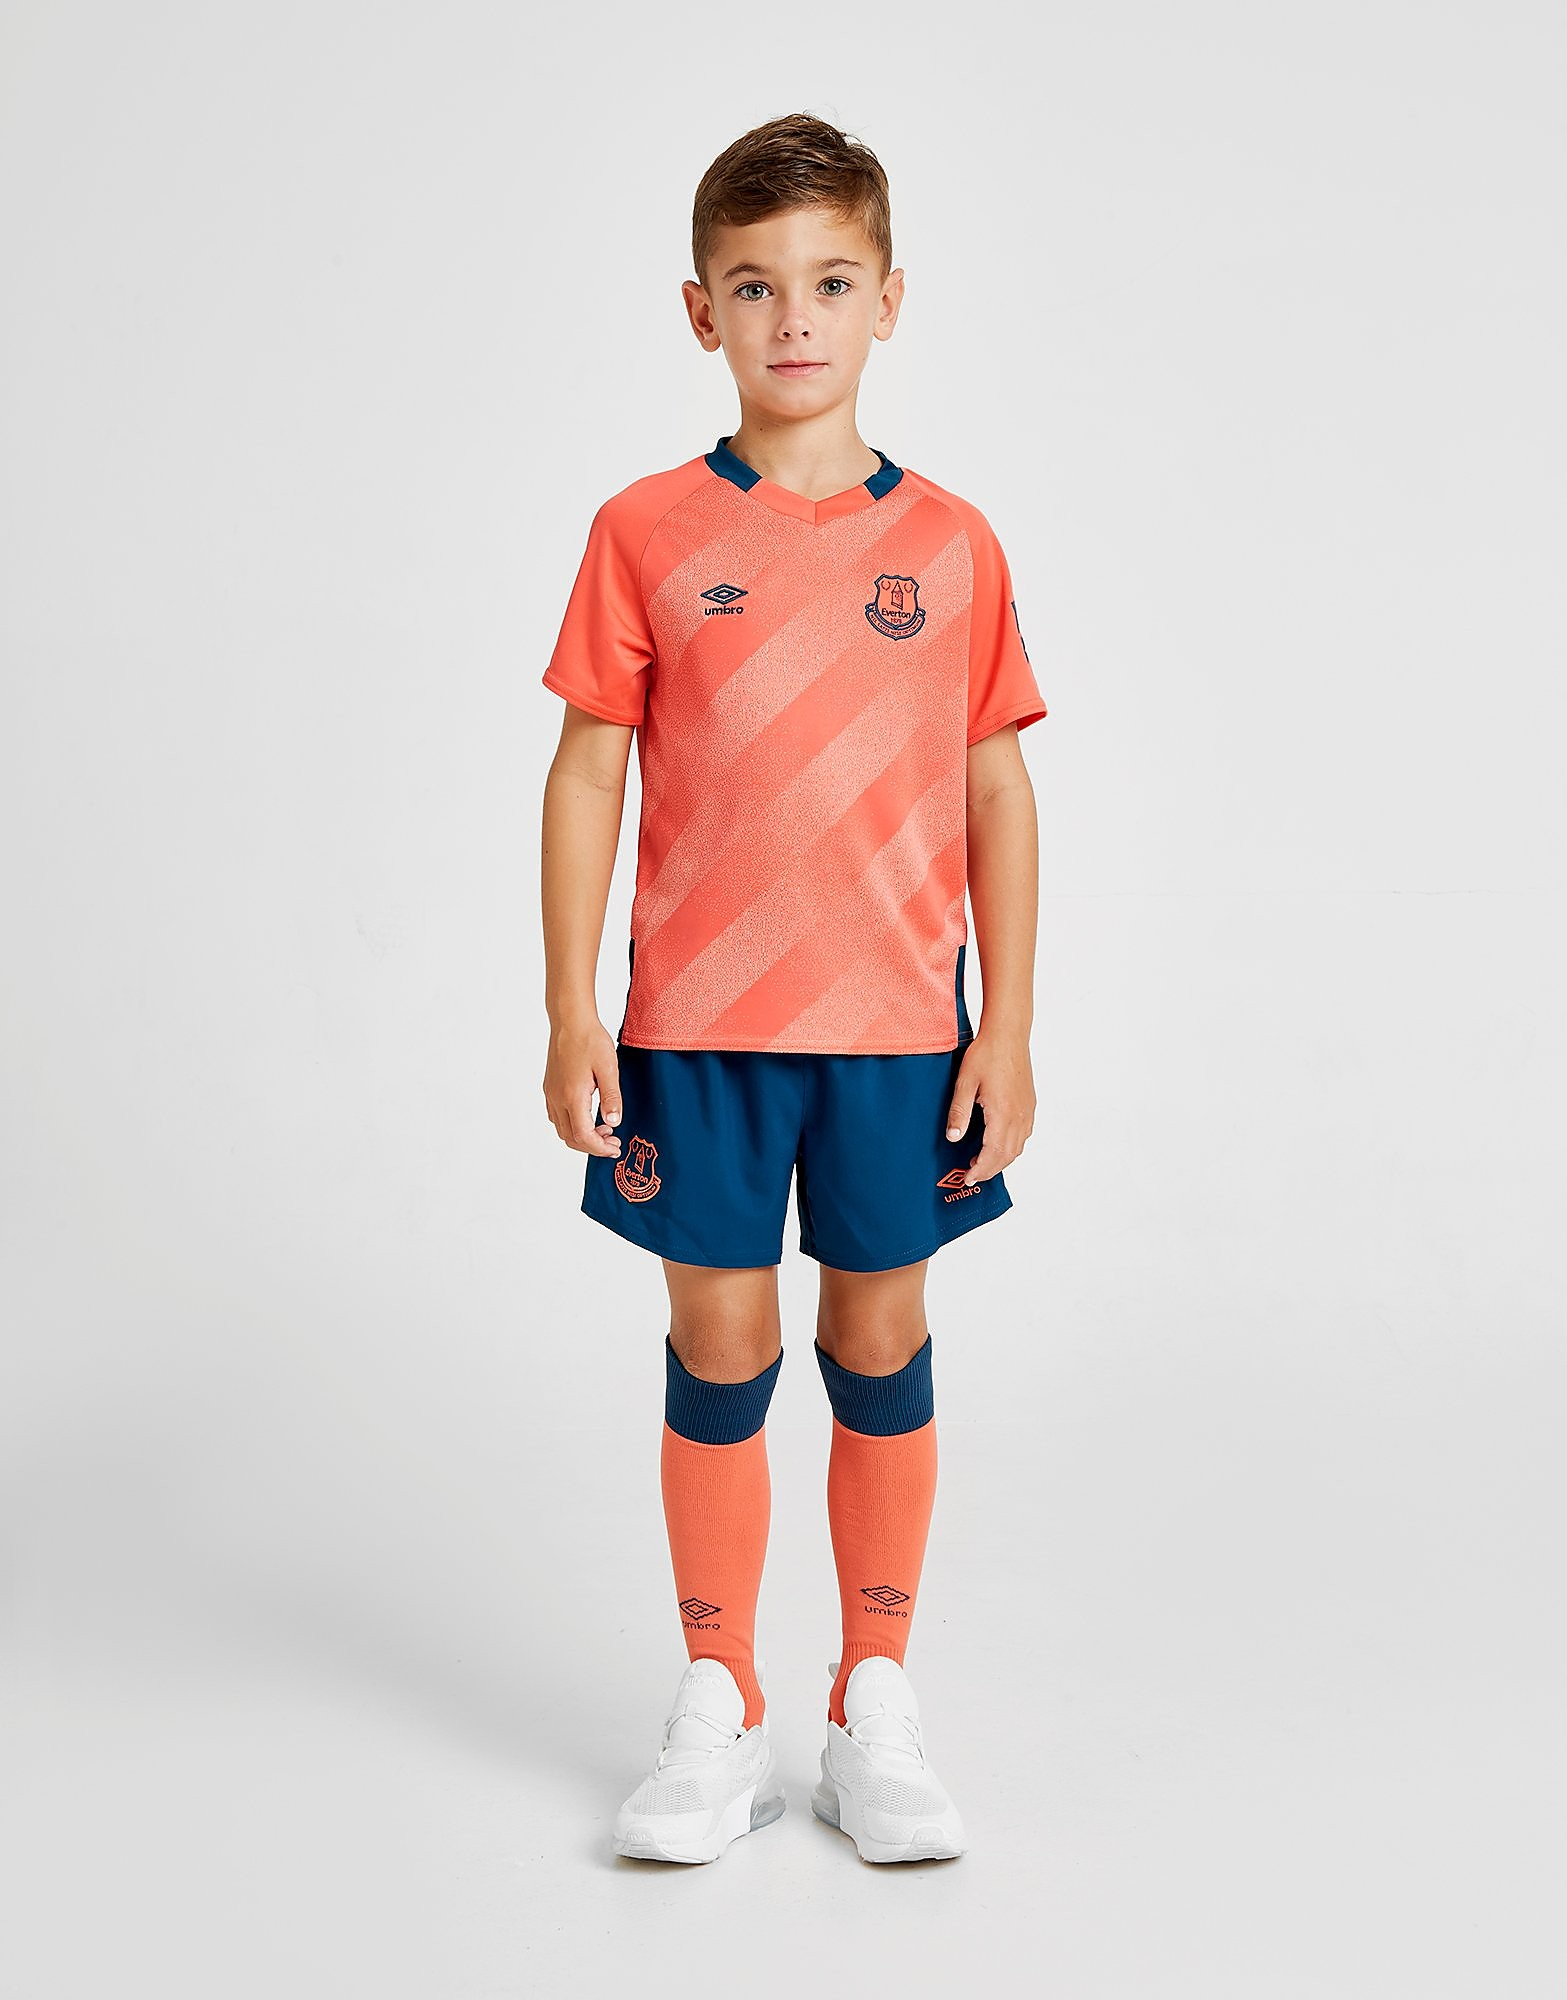 Umbro Everton FC 2019/20 Away Kit Children Roze Kind